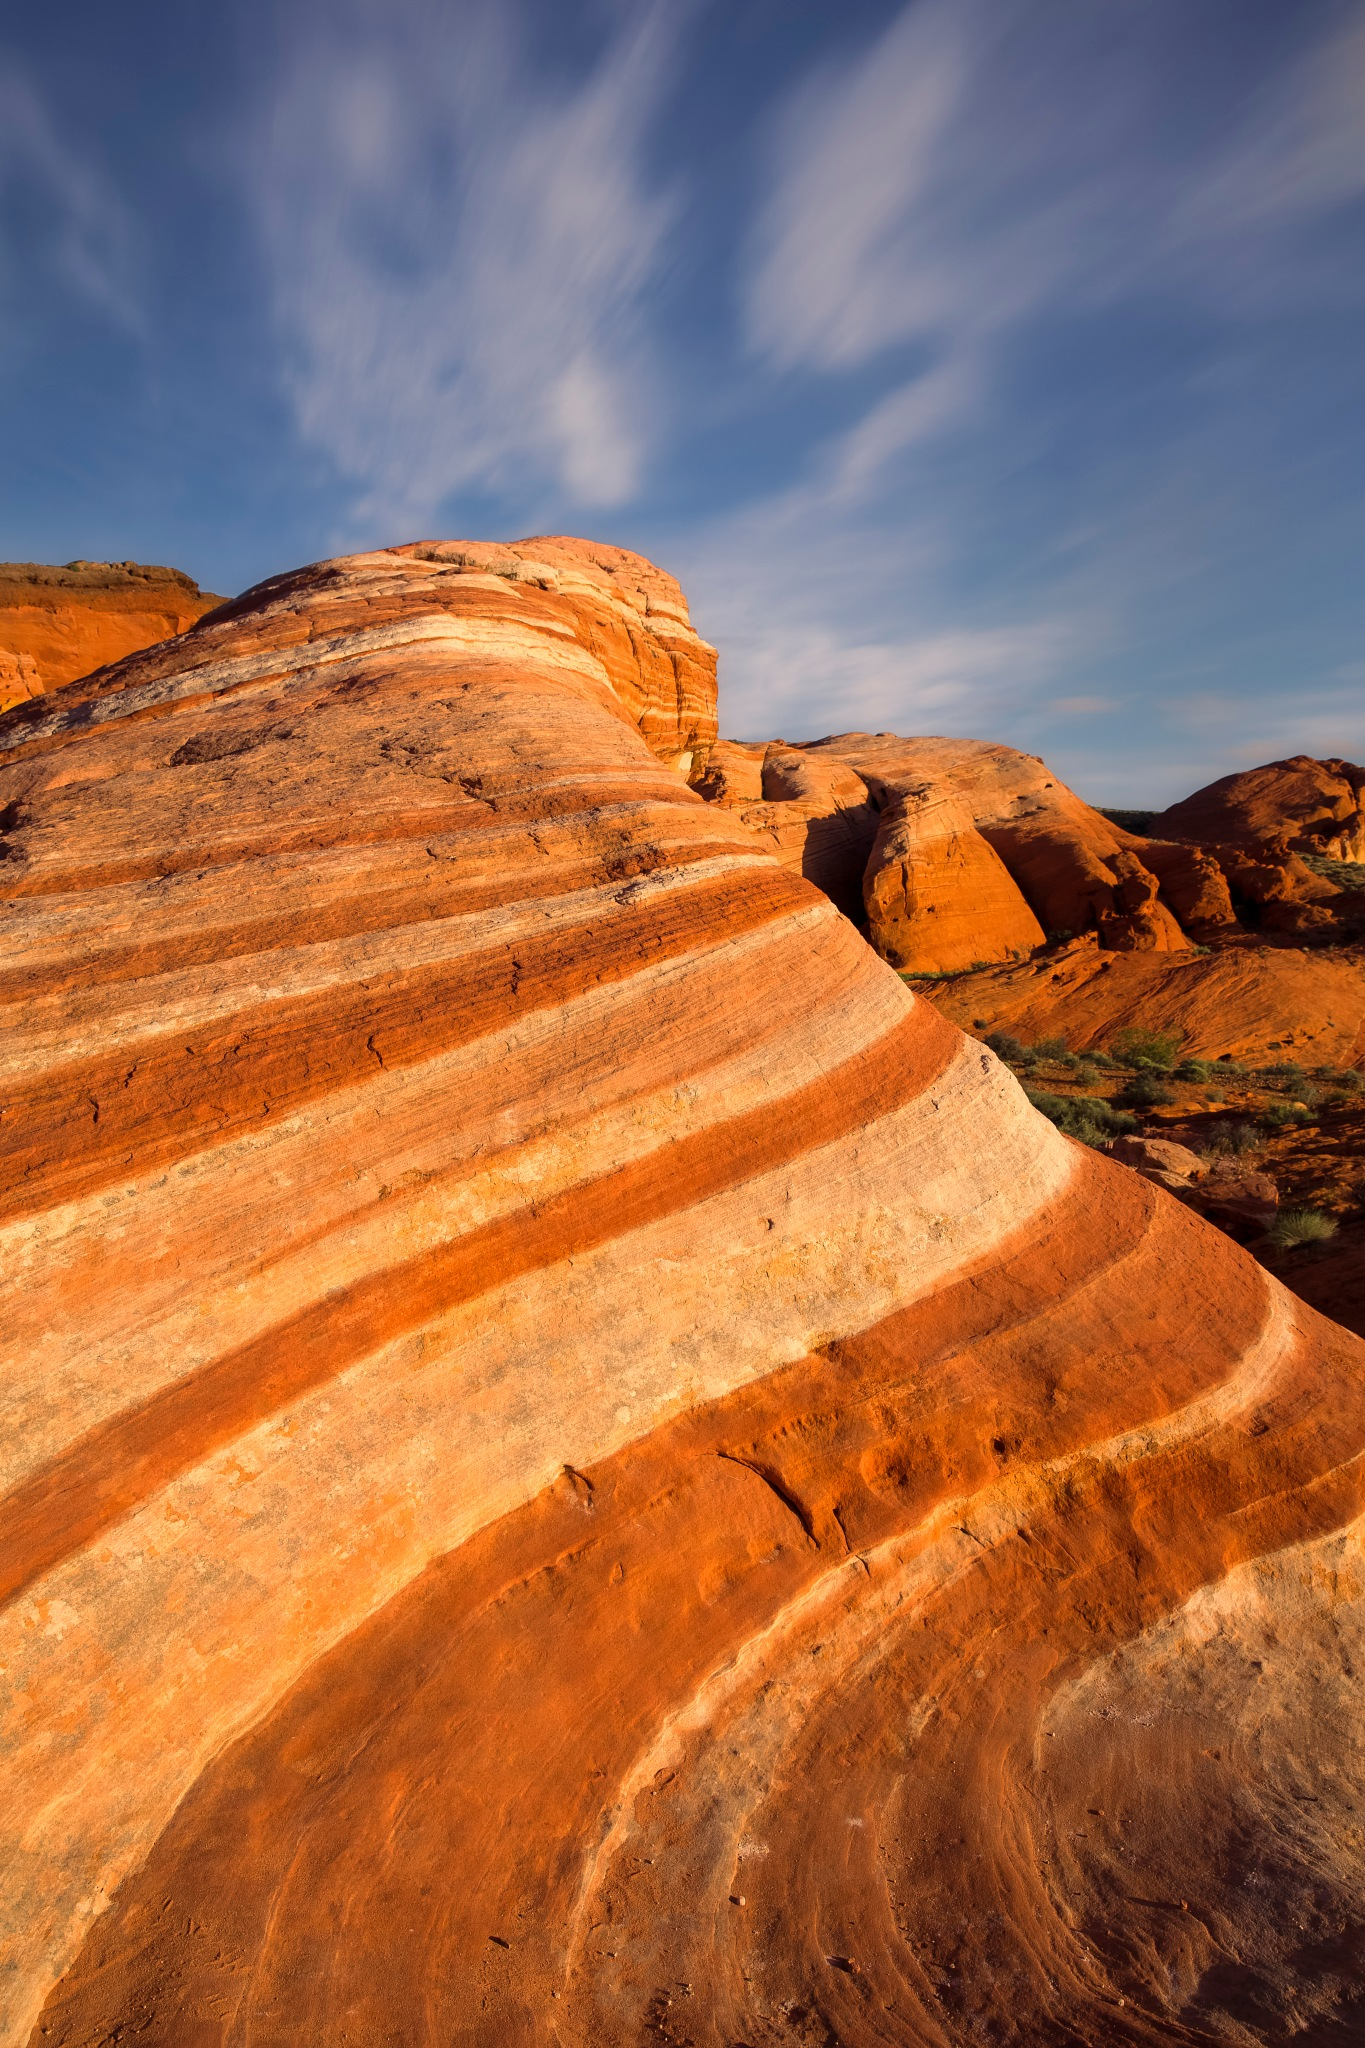 Valley of fire by Dianachang